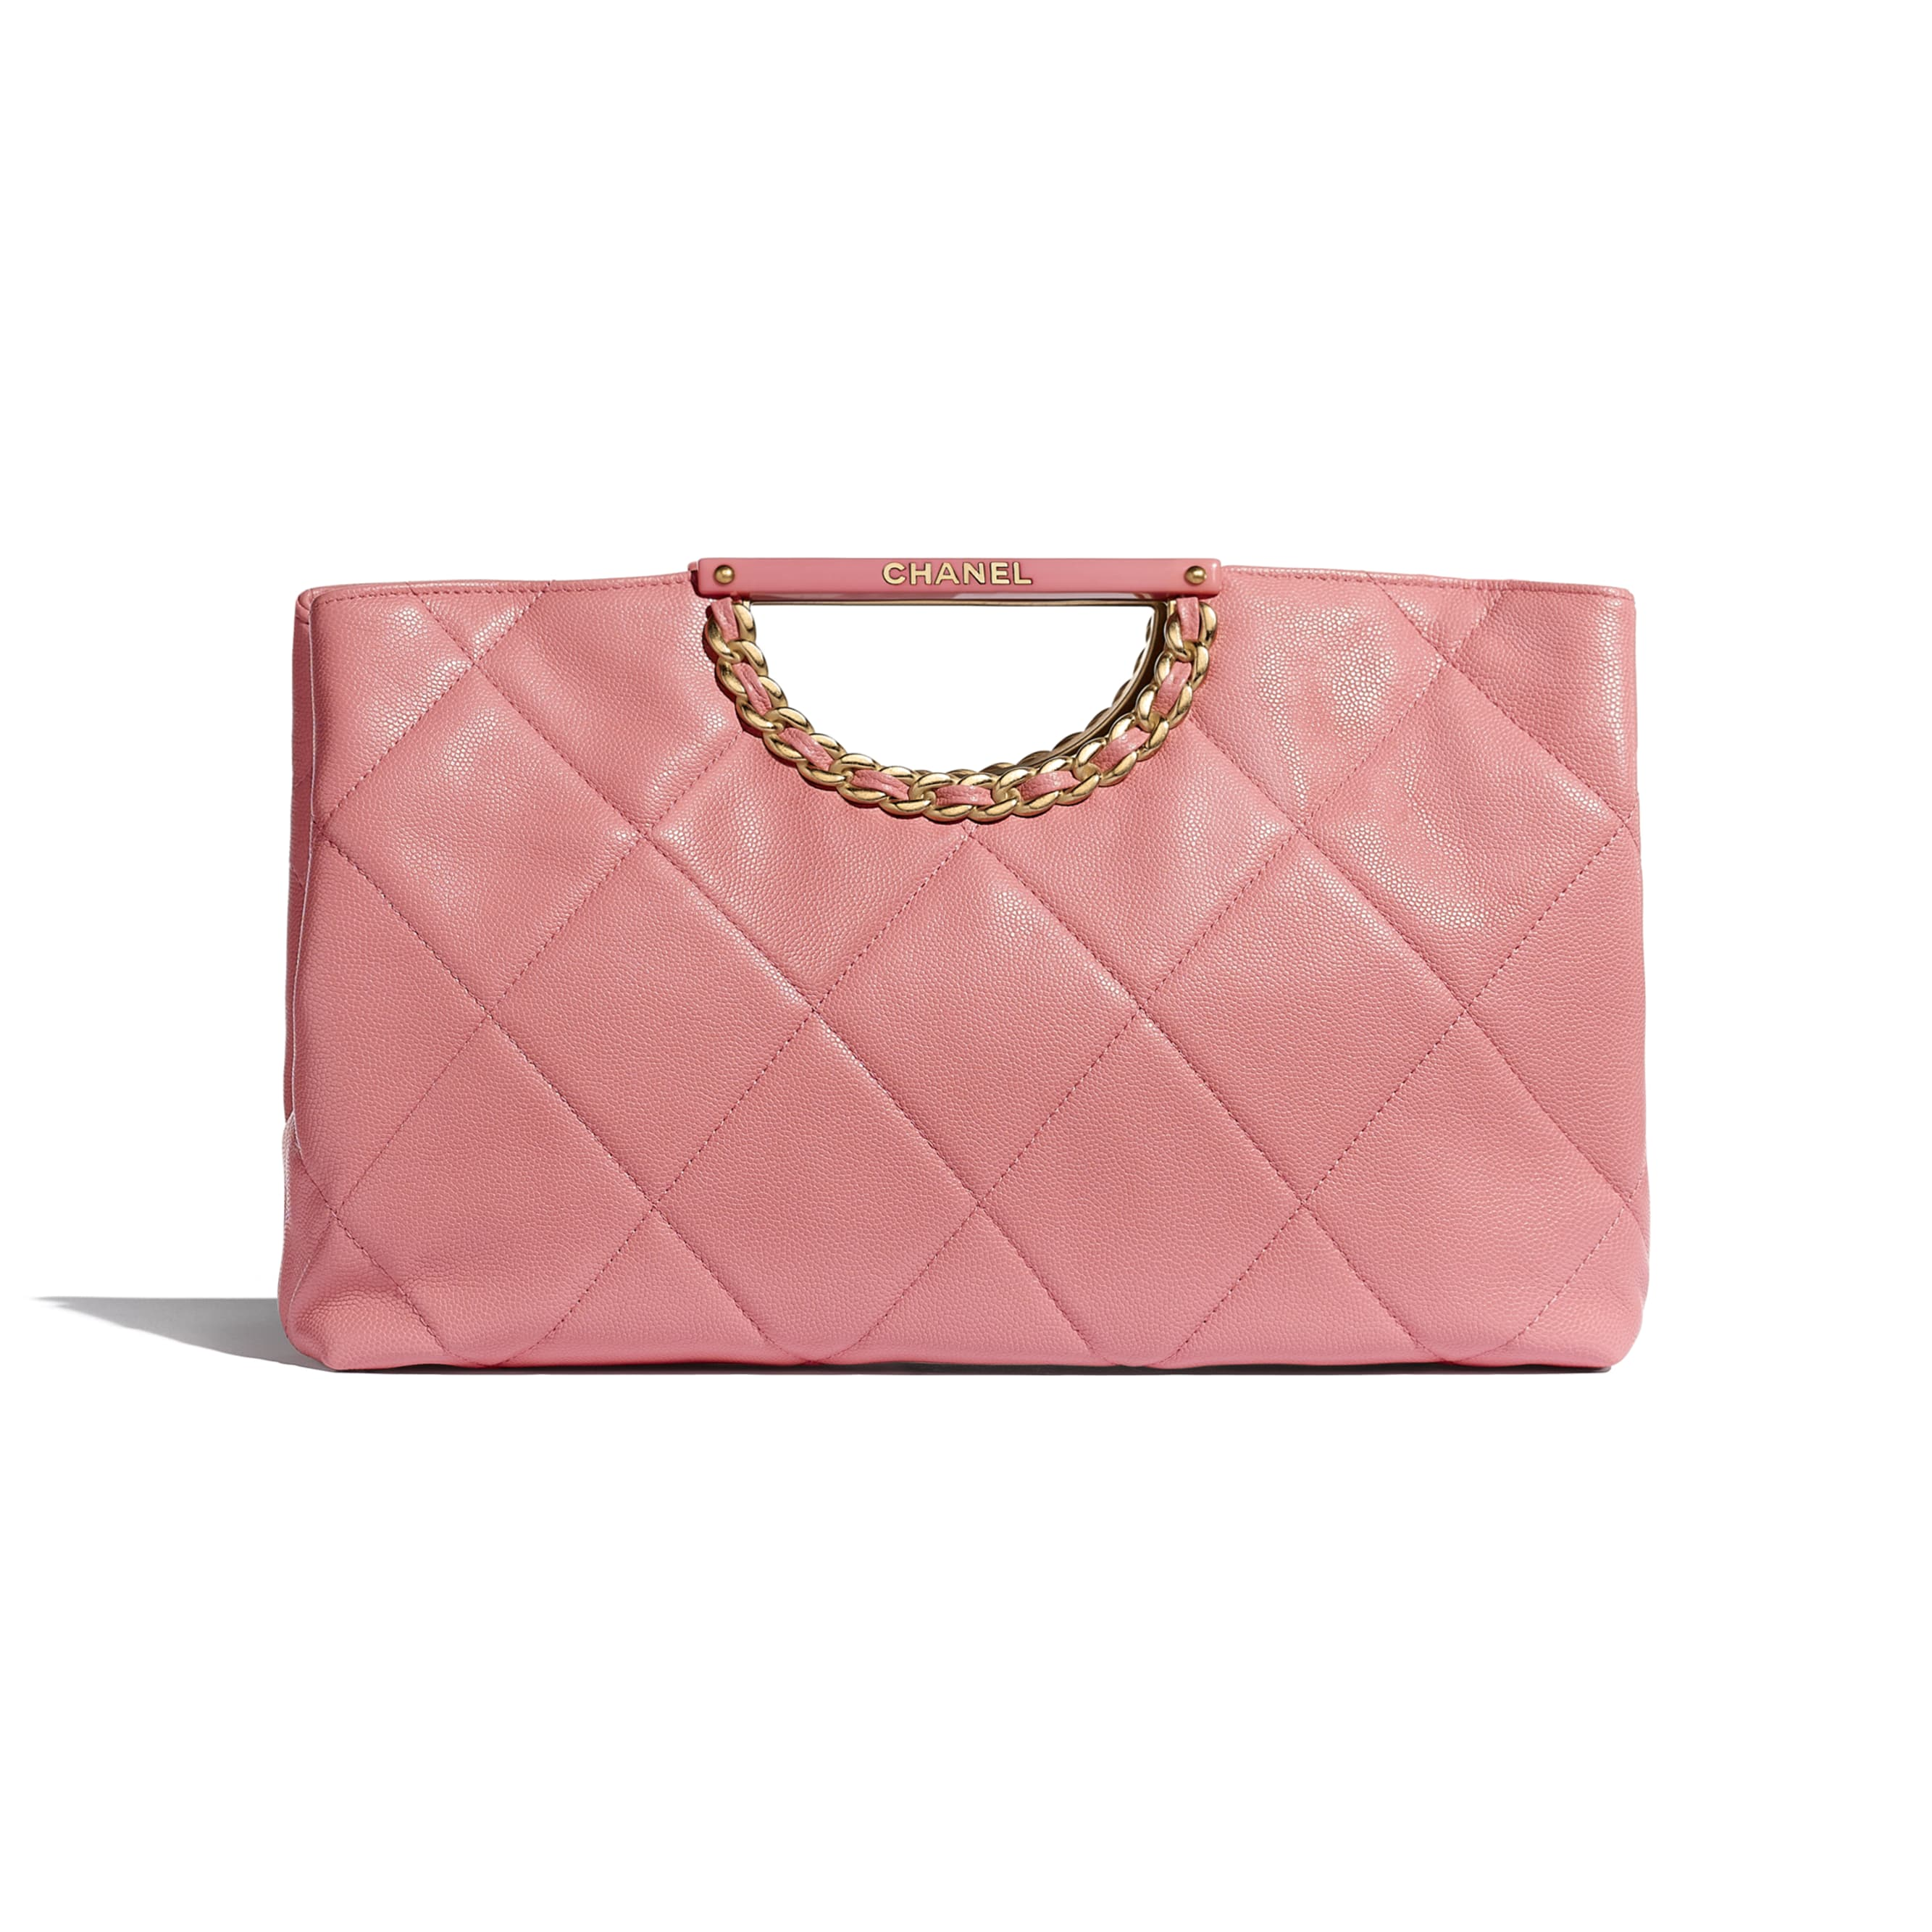 Clutch - Pink - Grained Calfskin & Gold-Tone Metal - CHANEL - Alternative view - see standard sized version